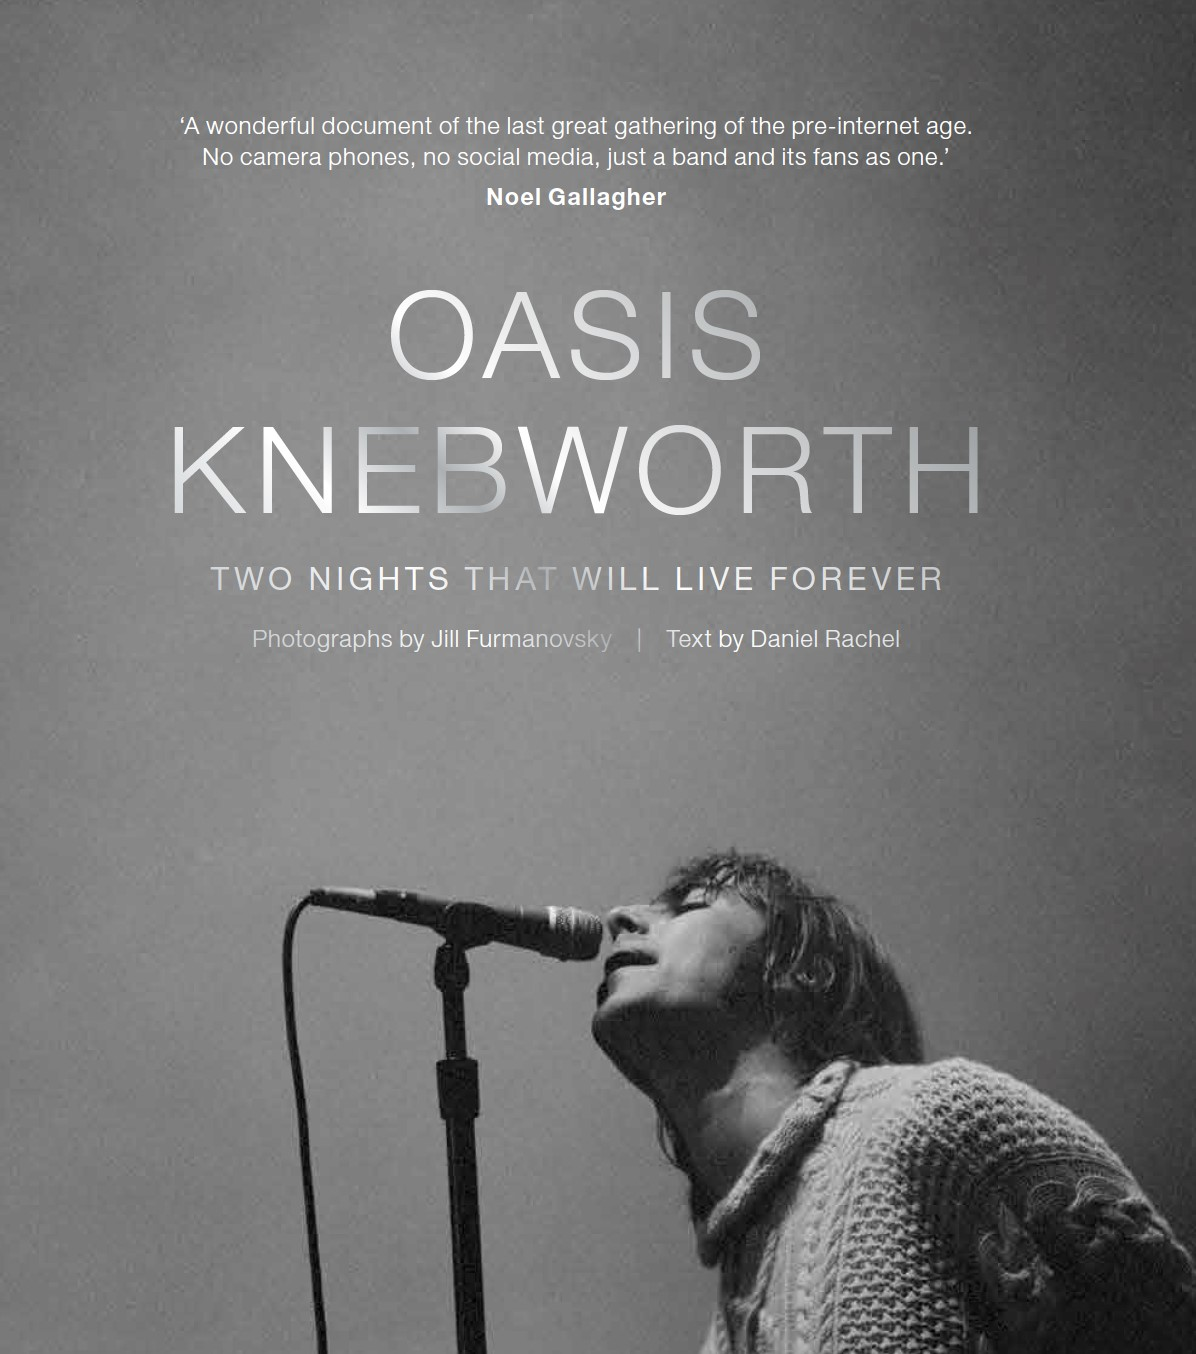 Oasis: Knebworth launch w/very special guests